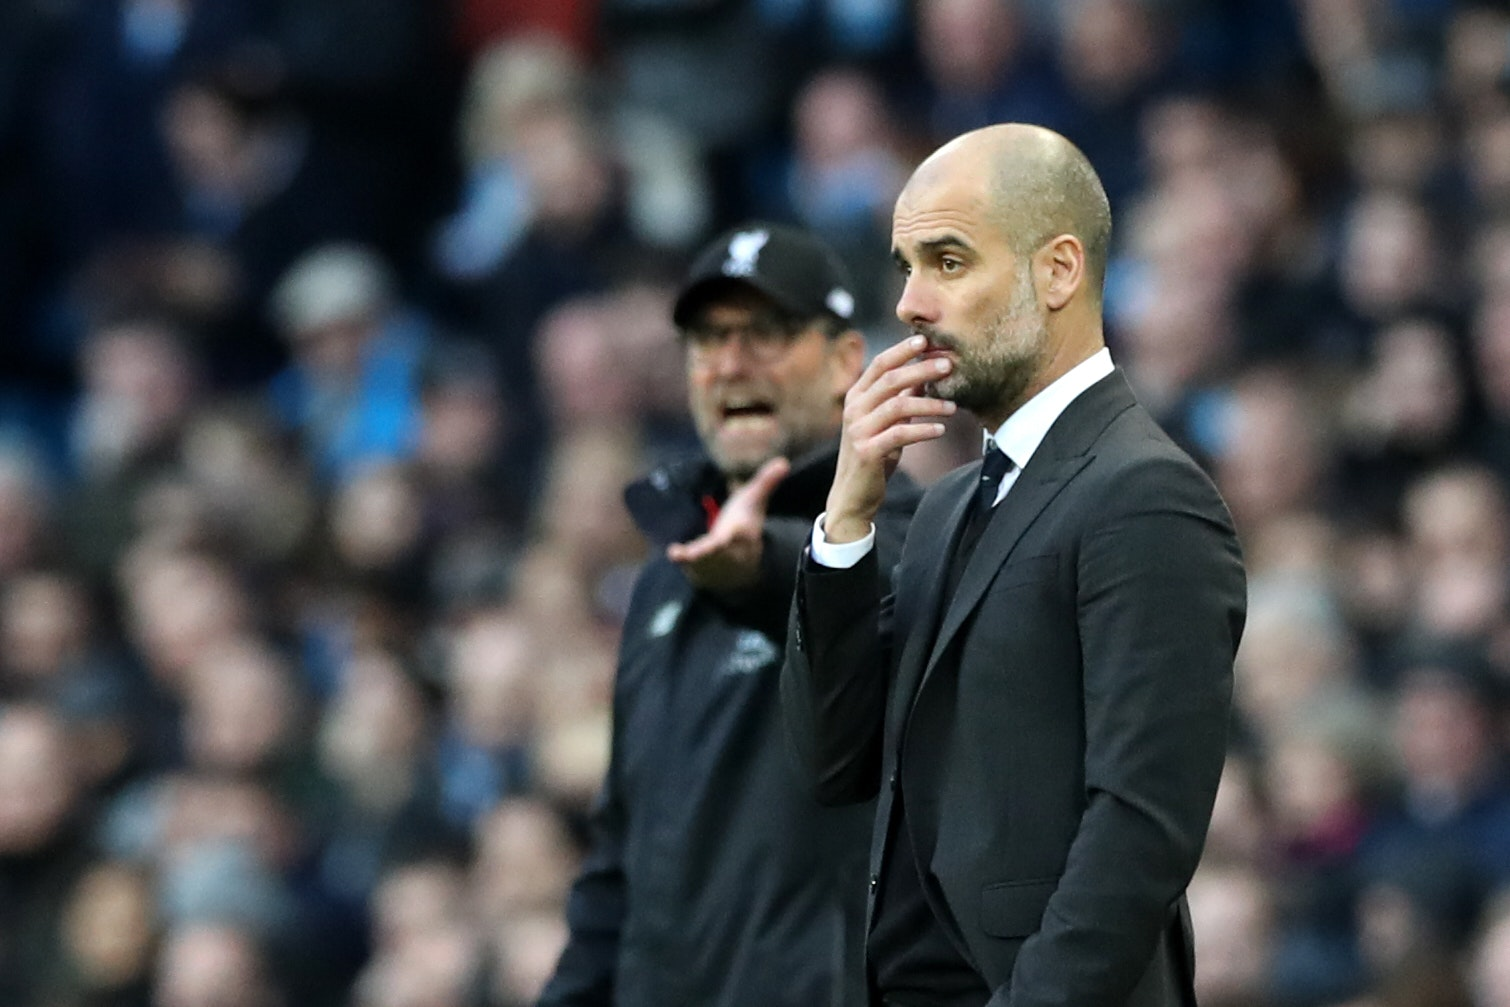 Jurgen Klopp's Liverpool are mounting a sustained challenge to Pep Guardiola's Manchester City this season